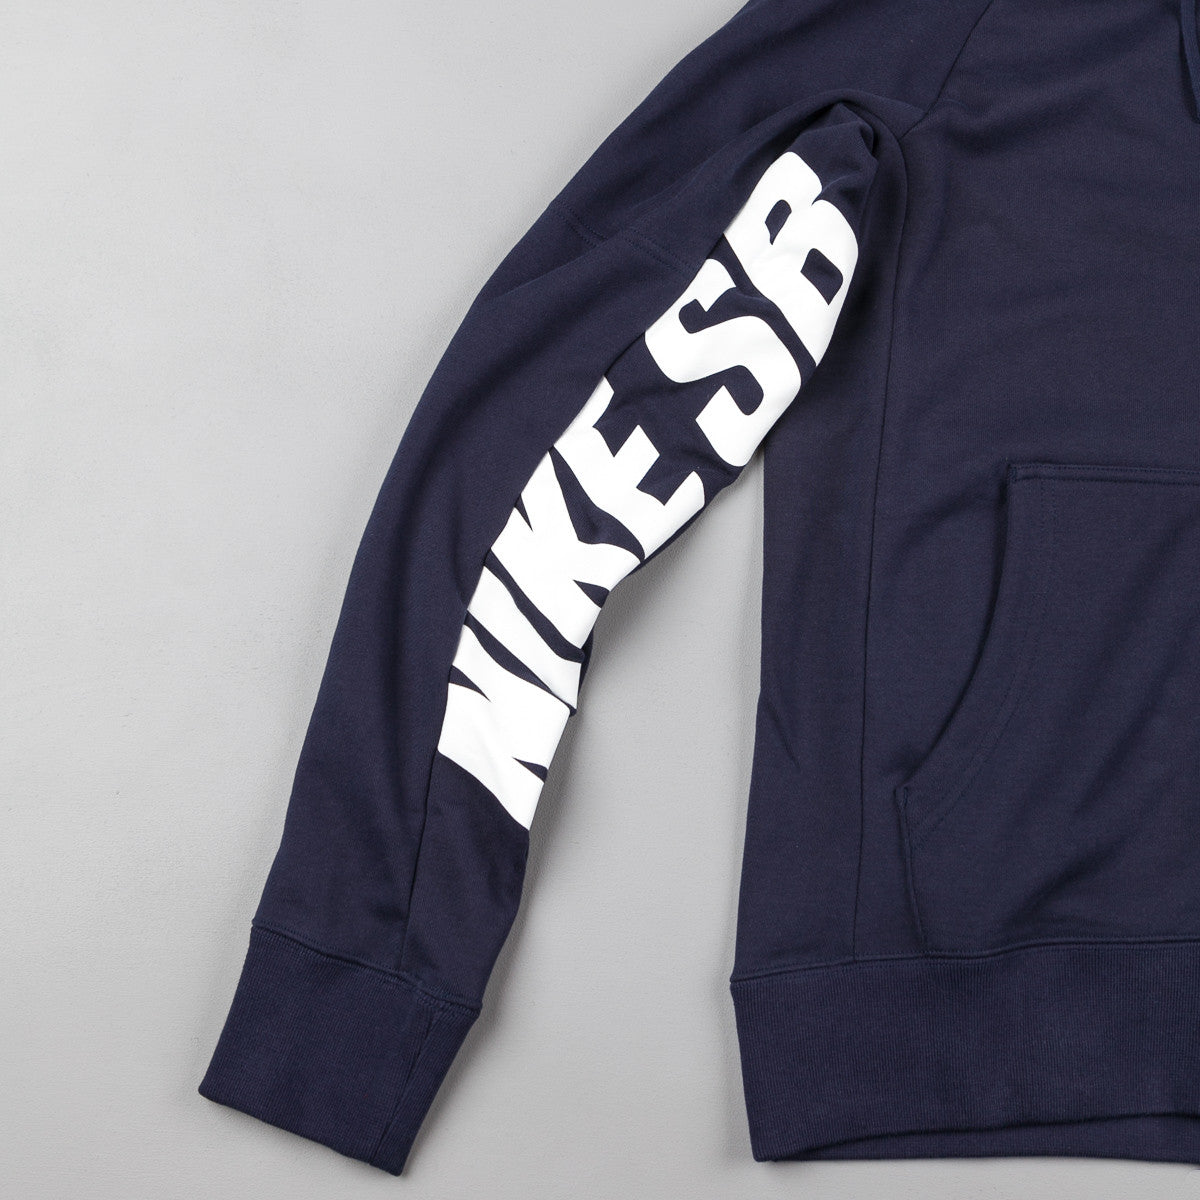 Nike SB Everett Graphic Full-Zip Hooded Sweatshirt - Obsidian / White